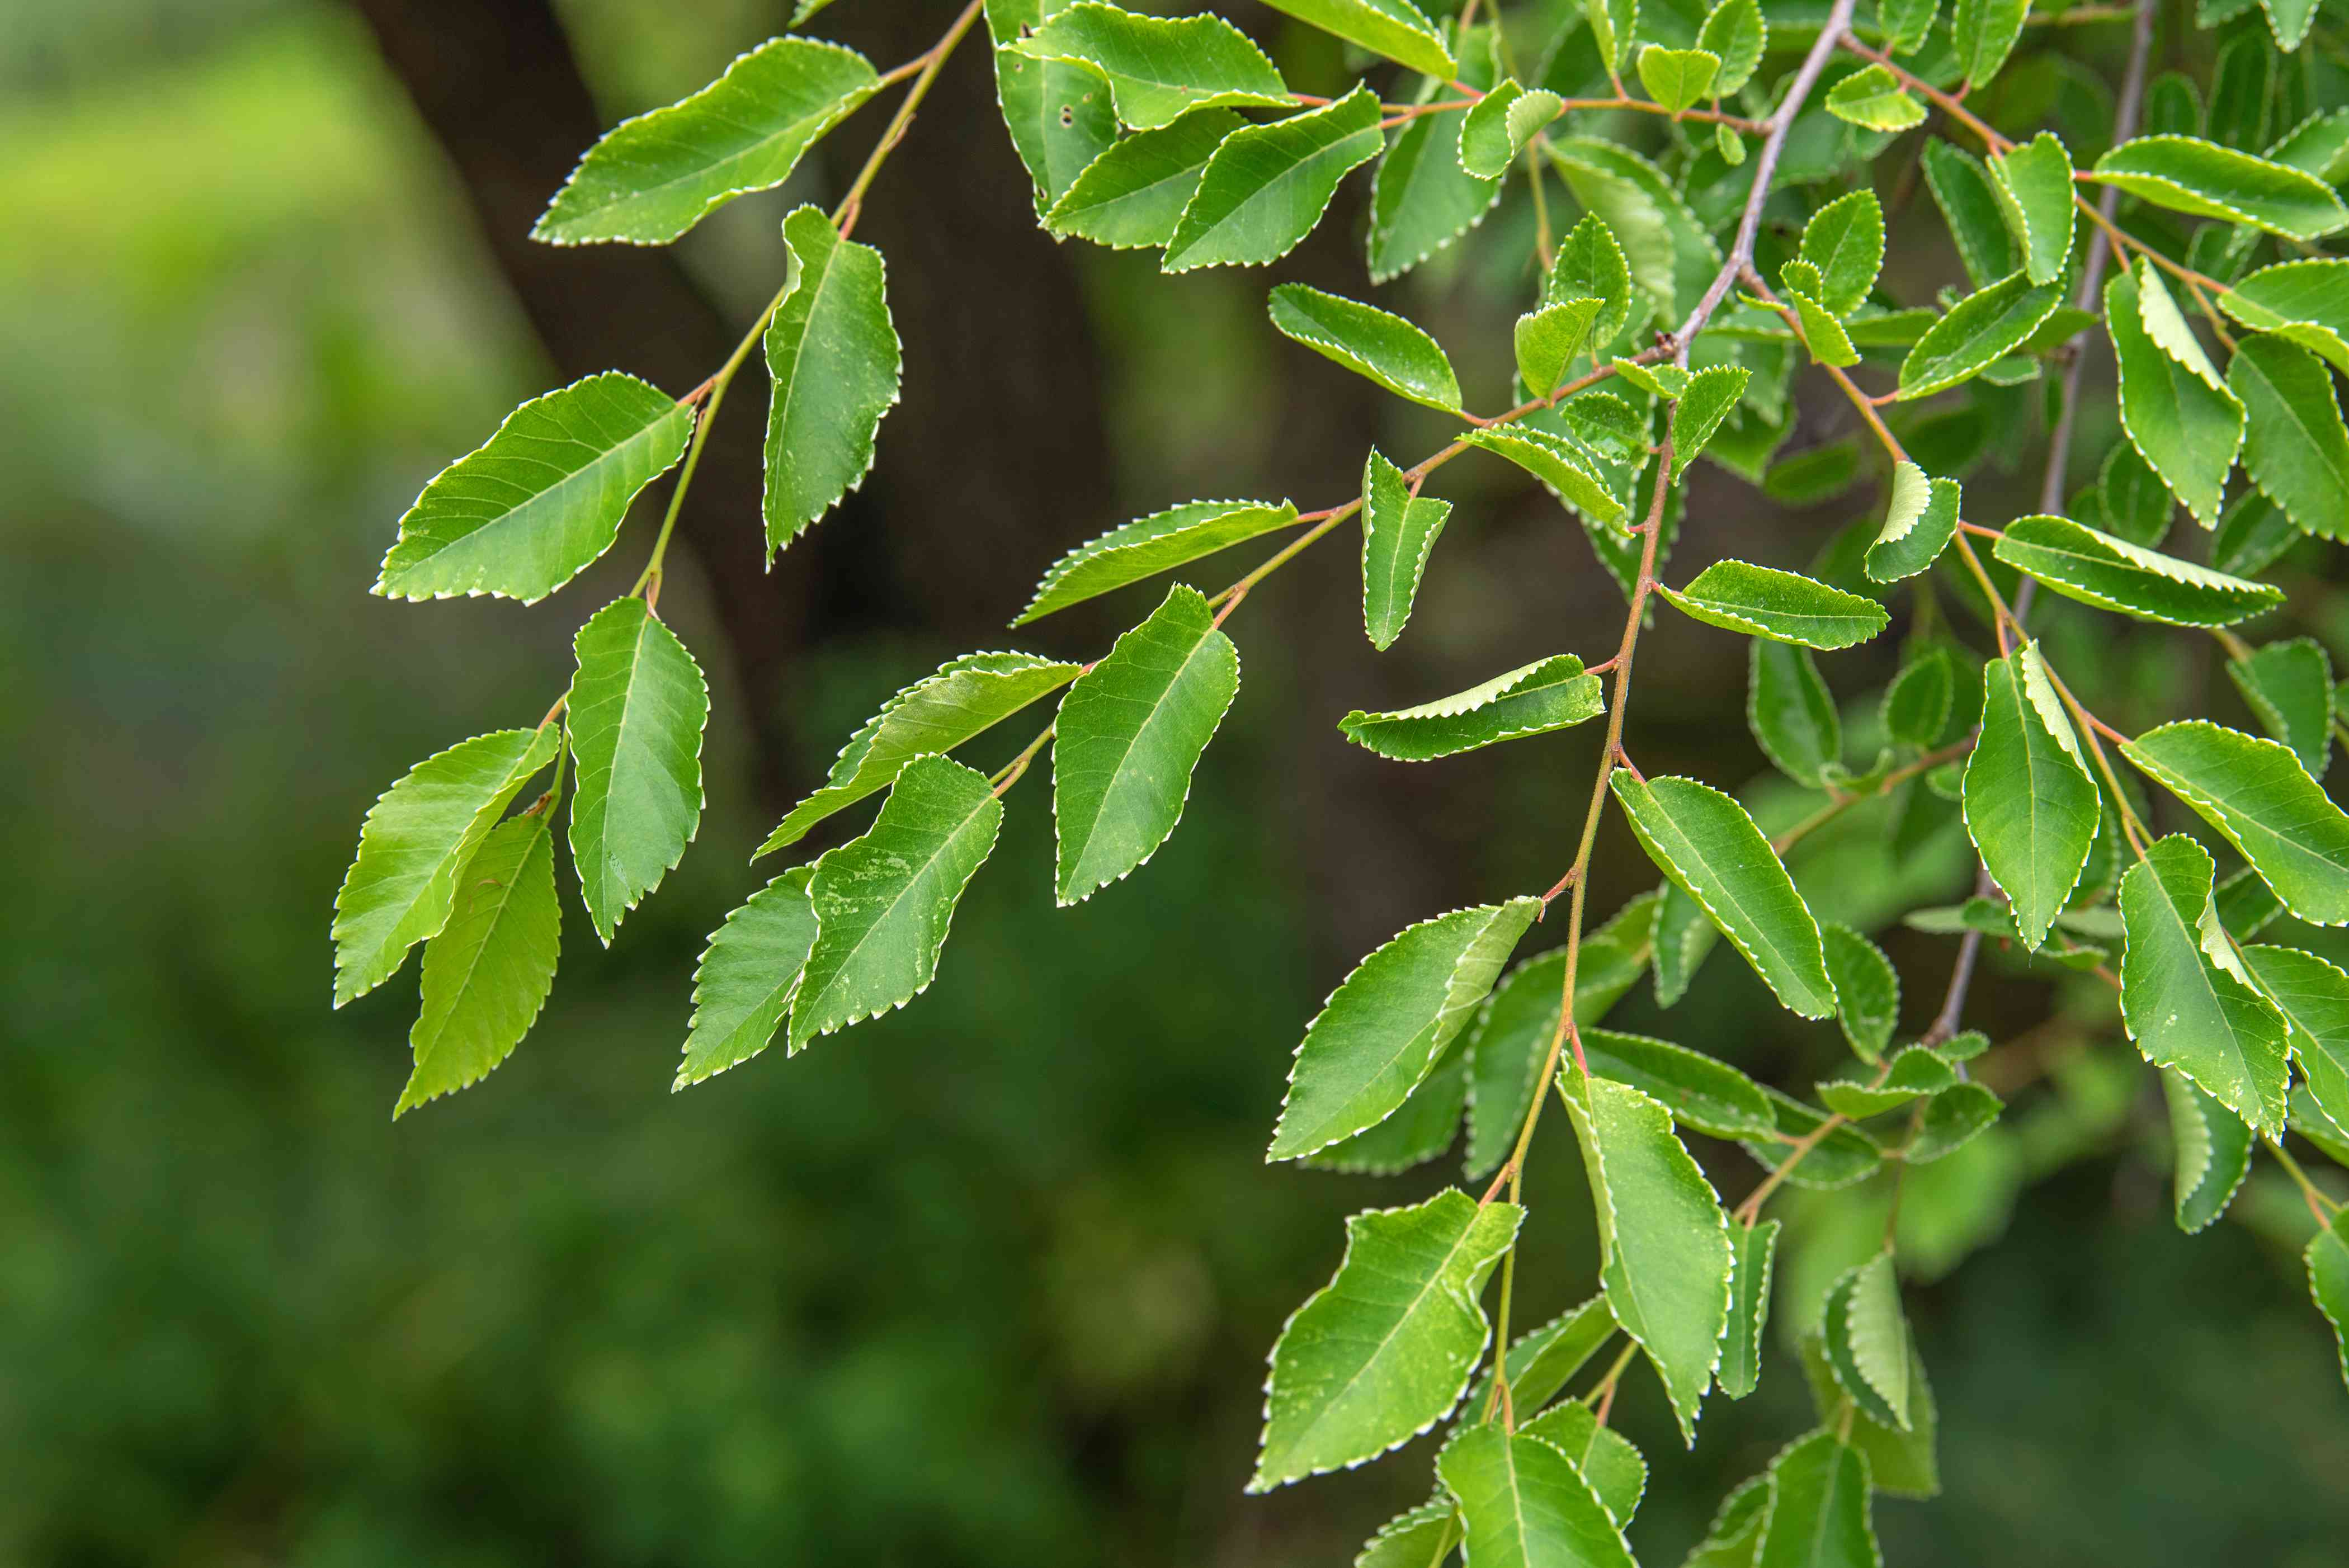 Lacebark elm tree branches with bright green and rib-edged leaves